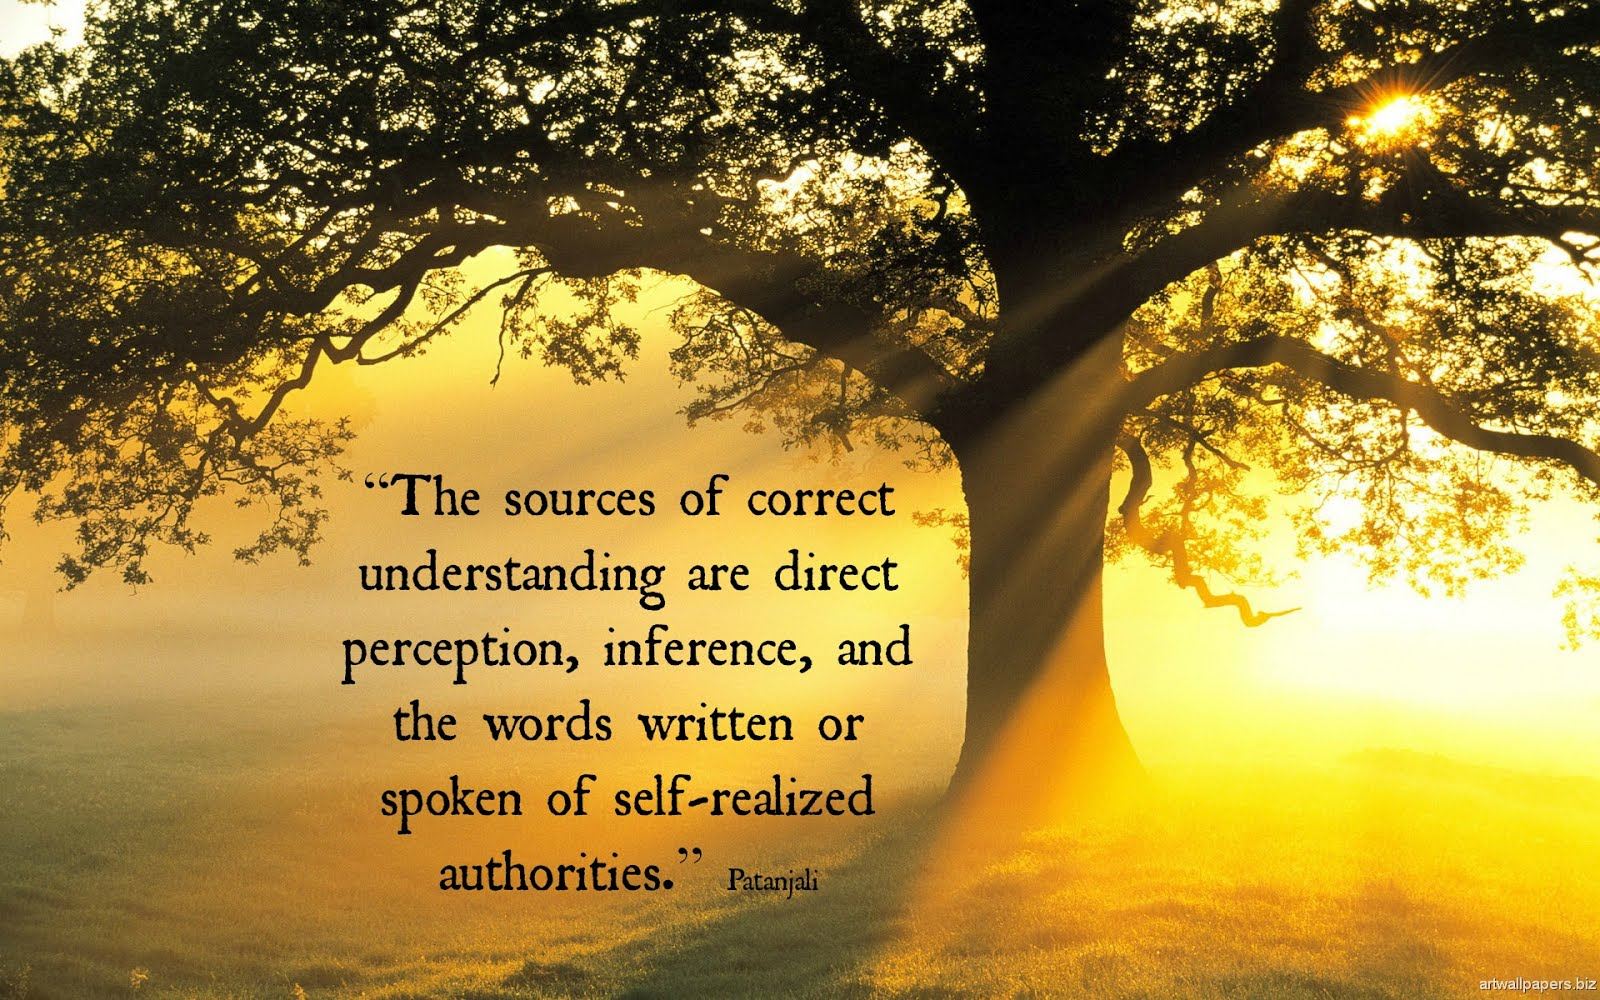 The Sources of Correct Understanding